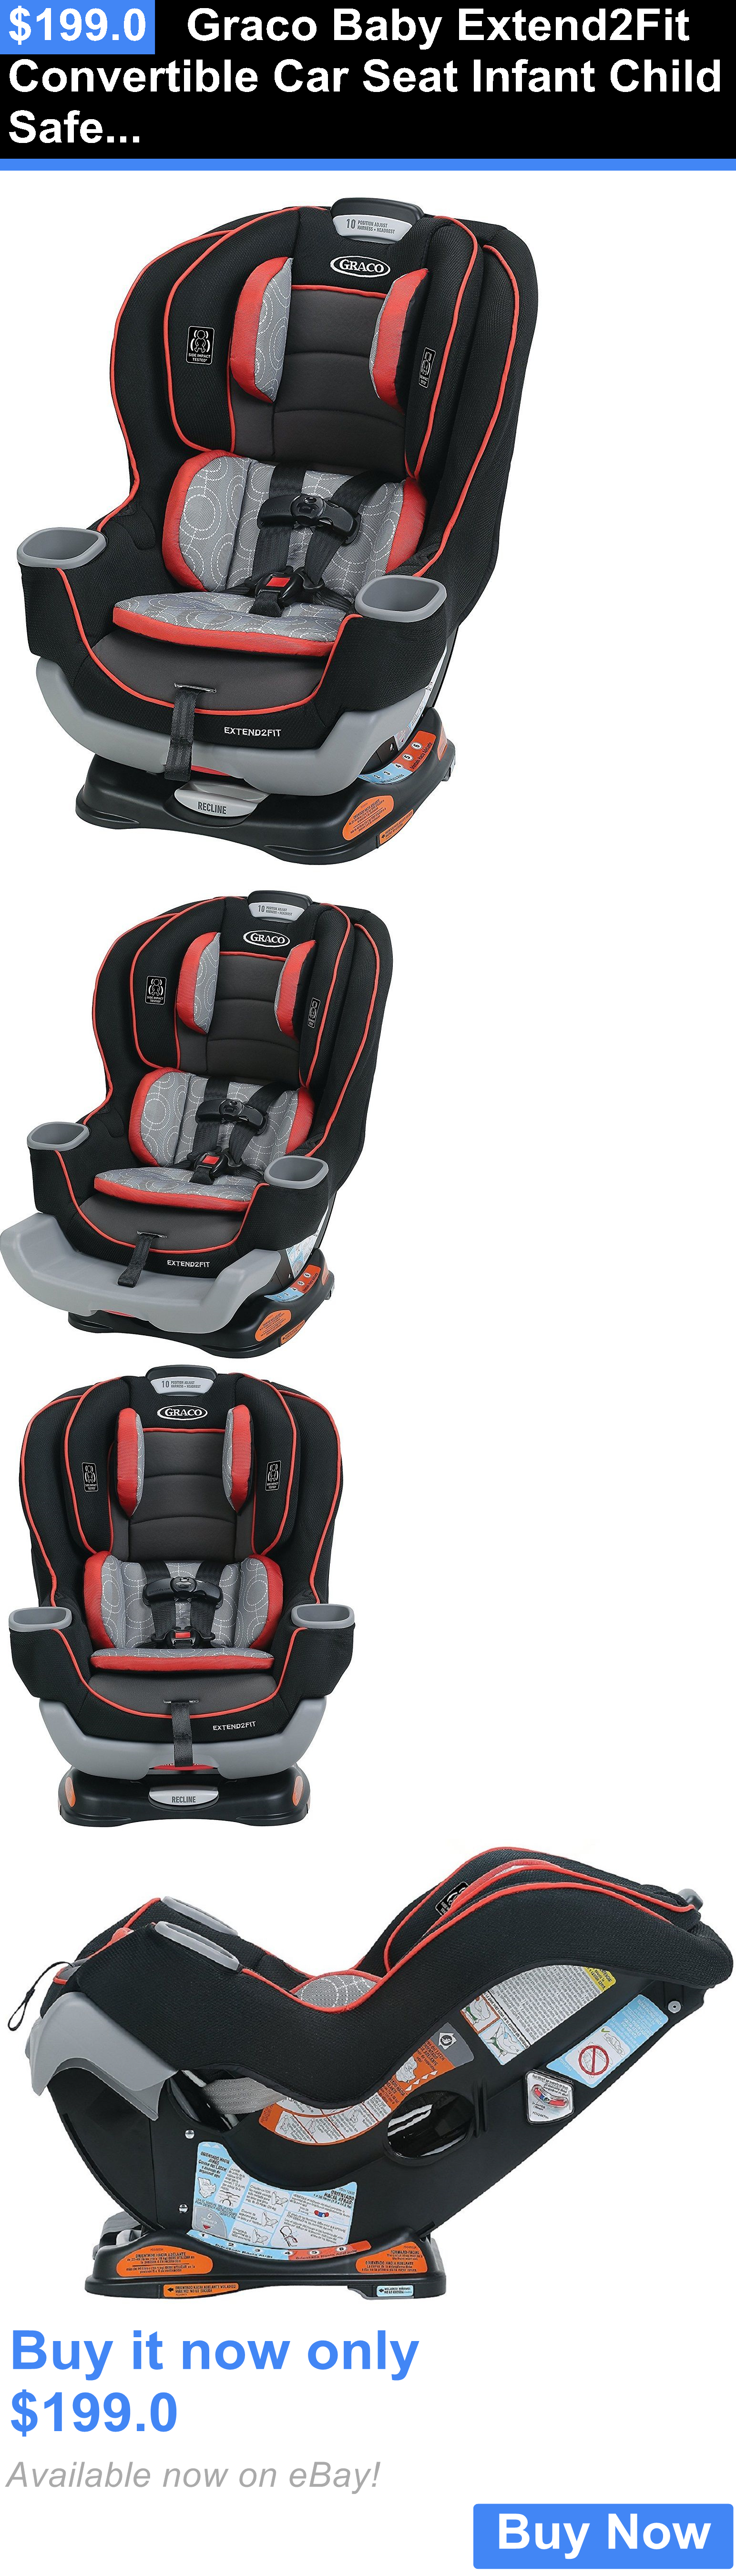 Baby And Kid Stuff Graco Extend2fit Convertible Car Seat Infant Child Safety Solar New BUY IT NOW ONLY 1990